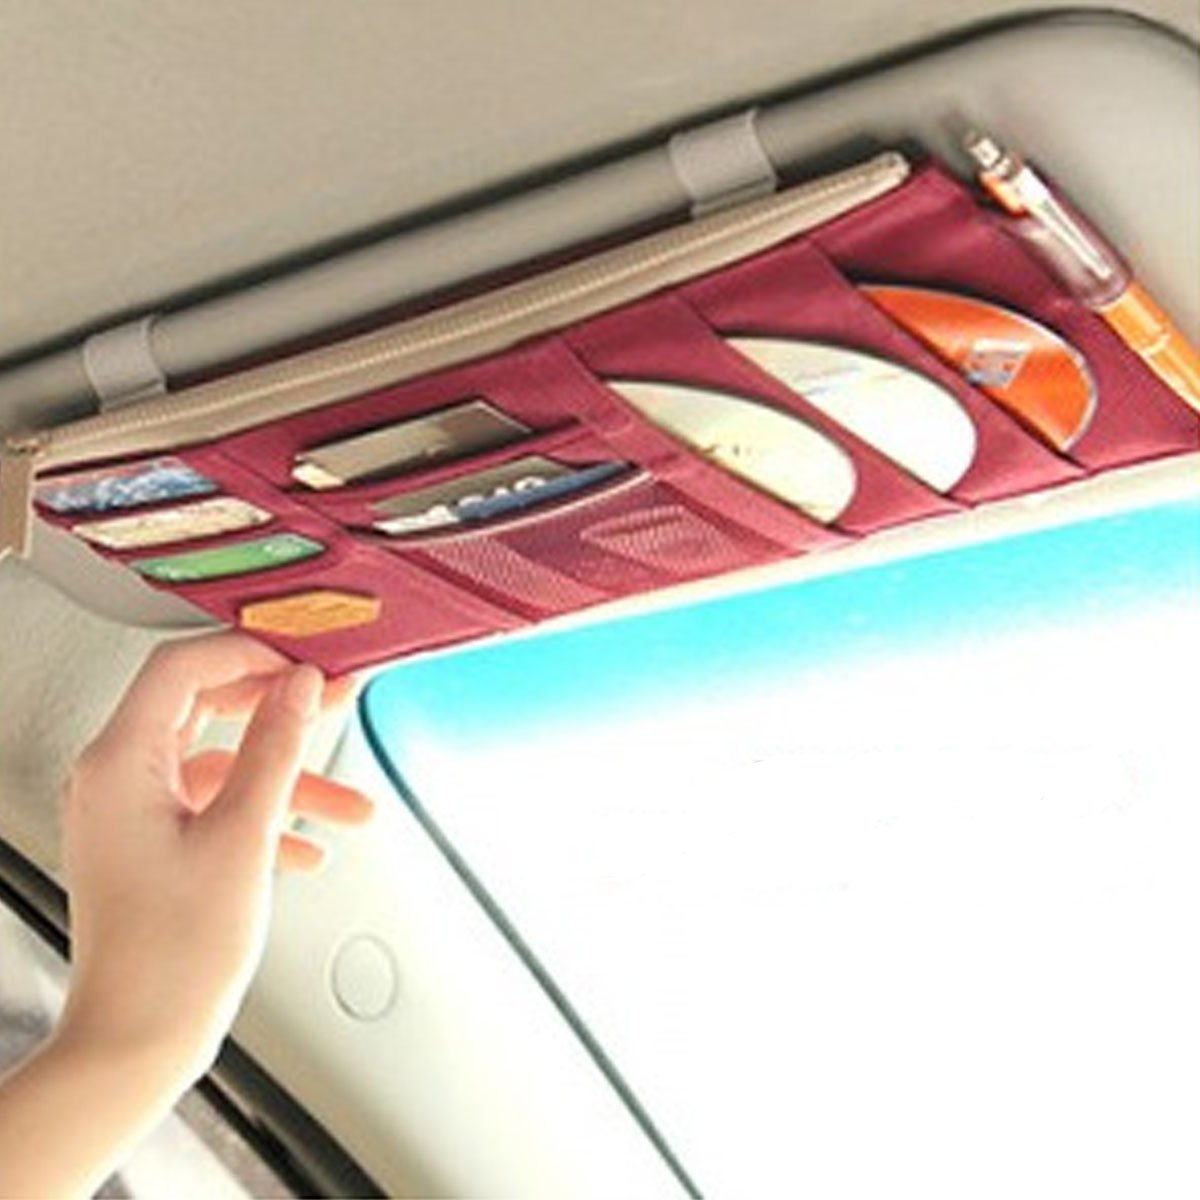 Mily Multi-purpose Car Visor Organizer, Sun Shade CD Holder Card Storage Pouch Bag Wine Red by Mily